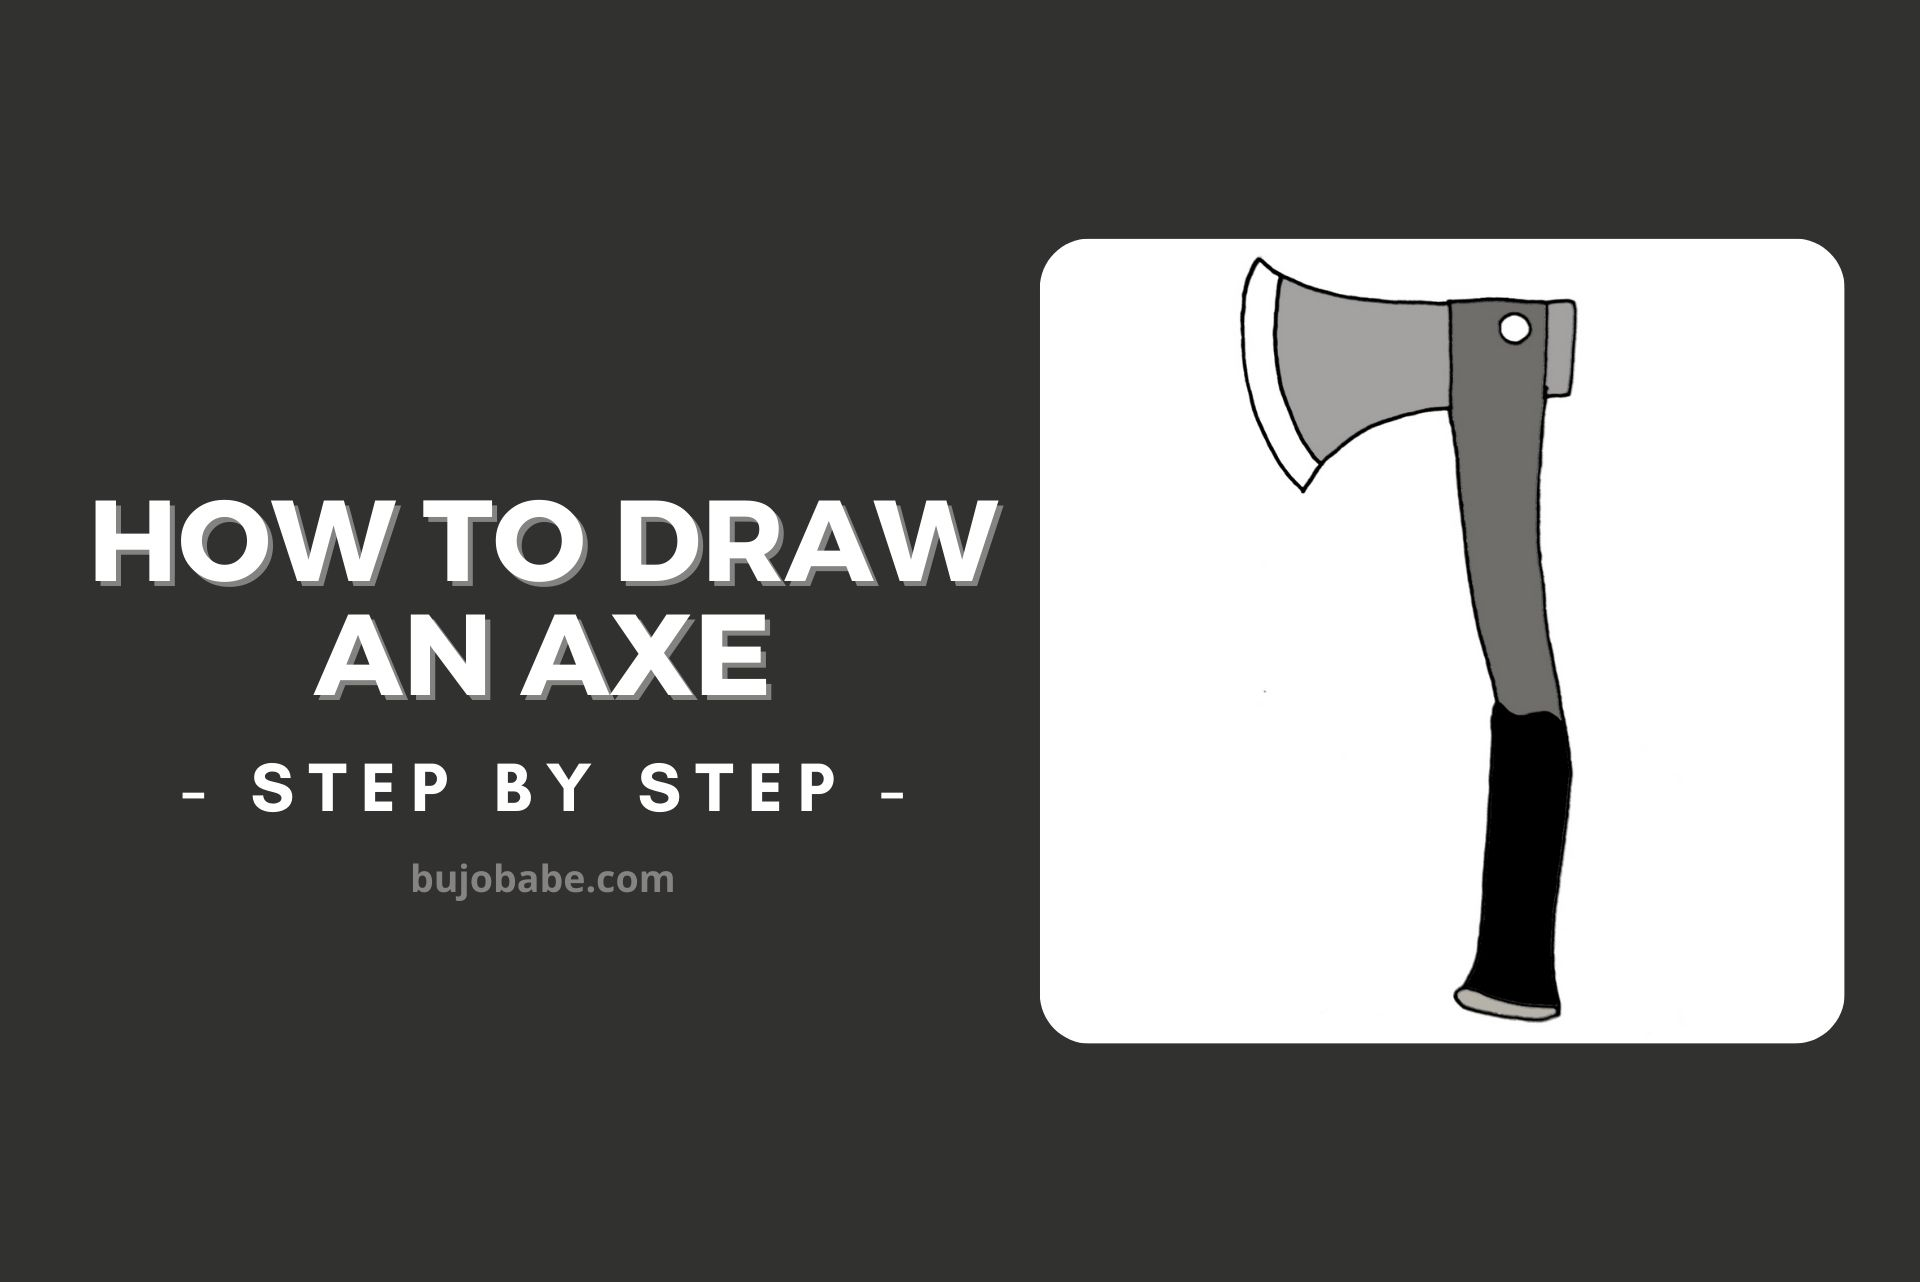 how to draw an axe step by step